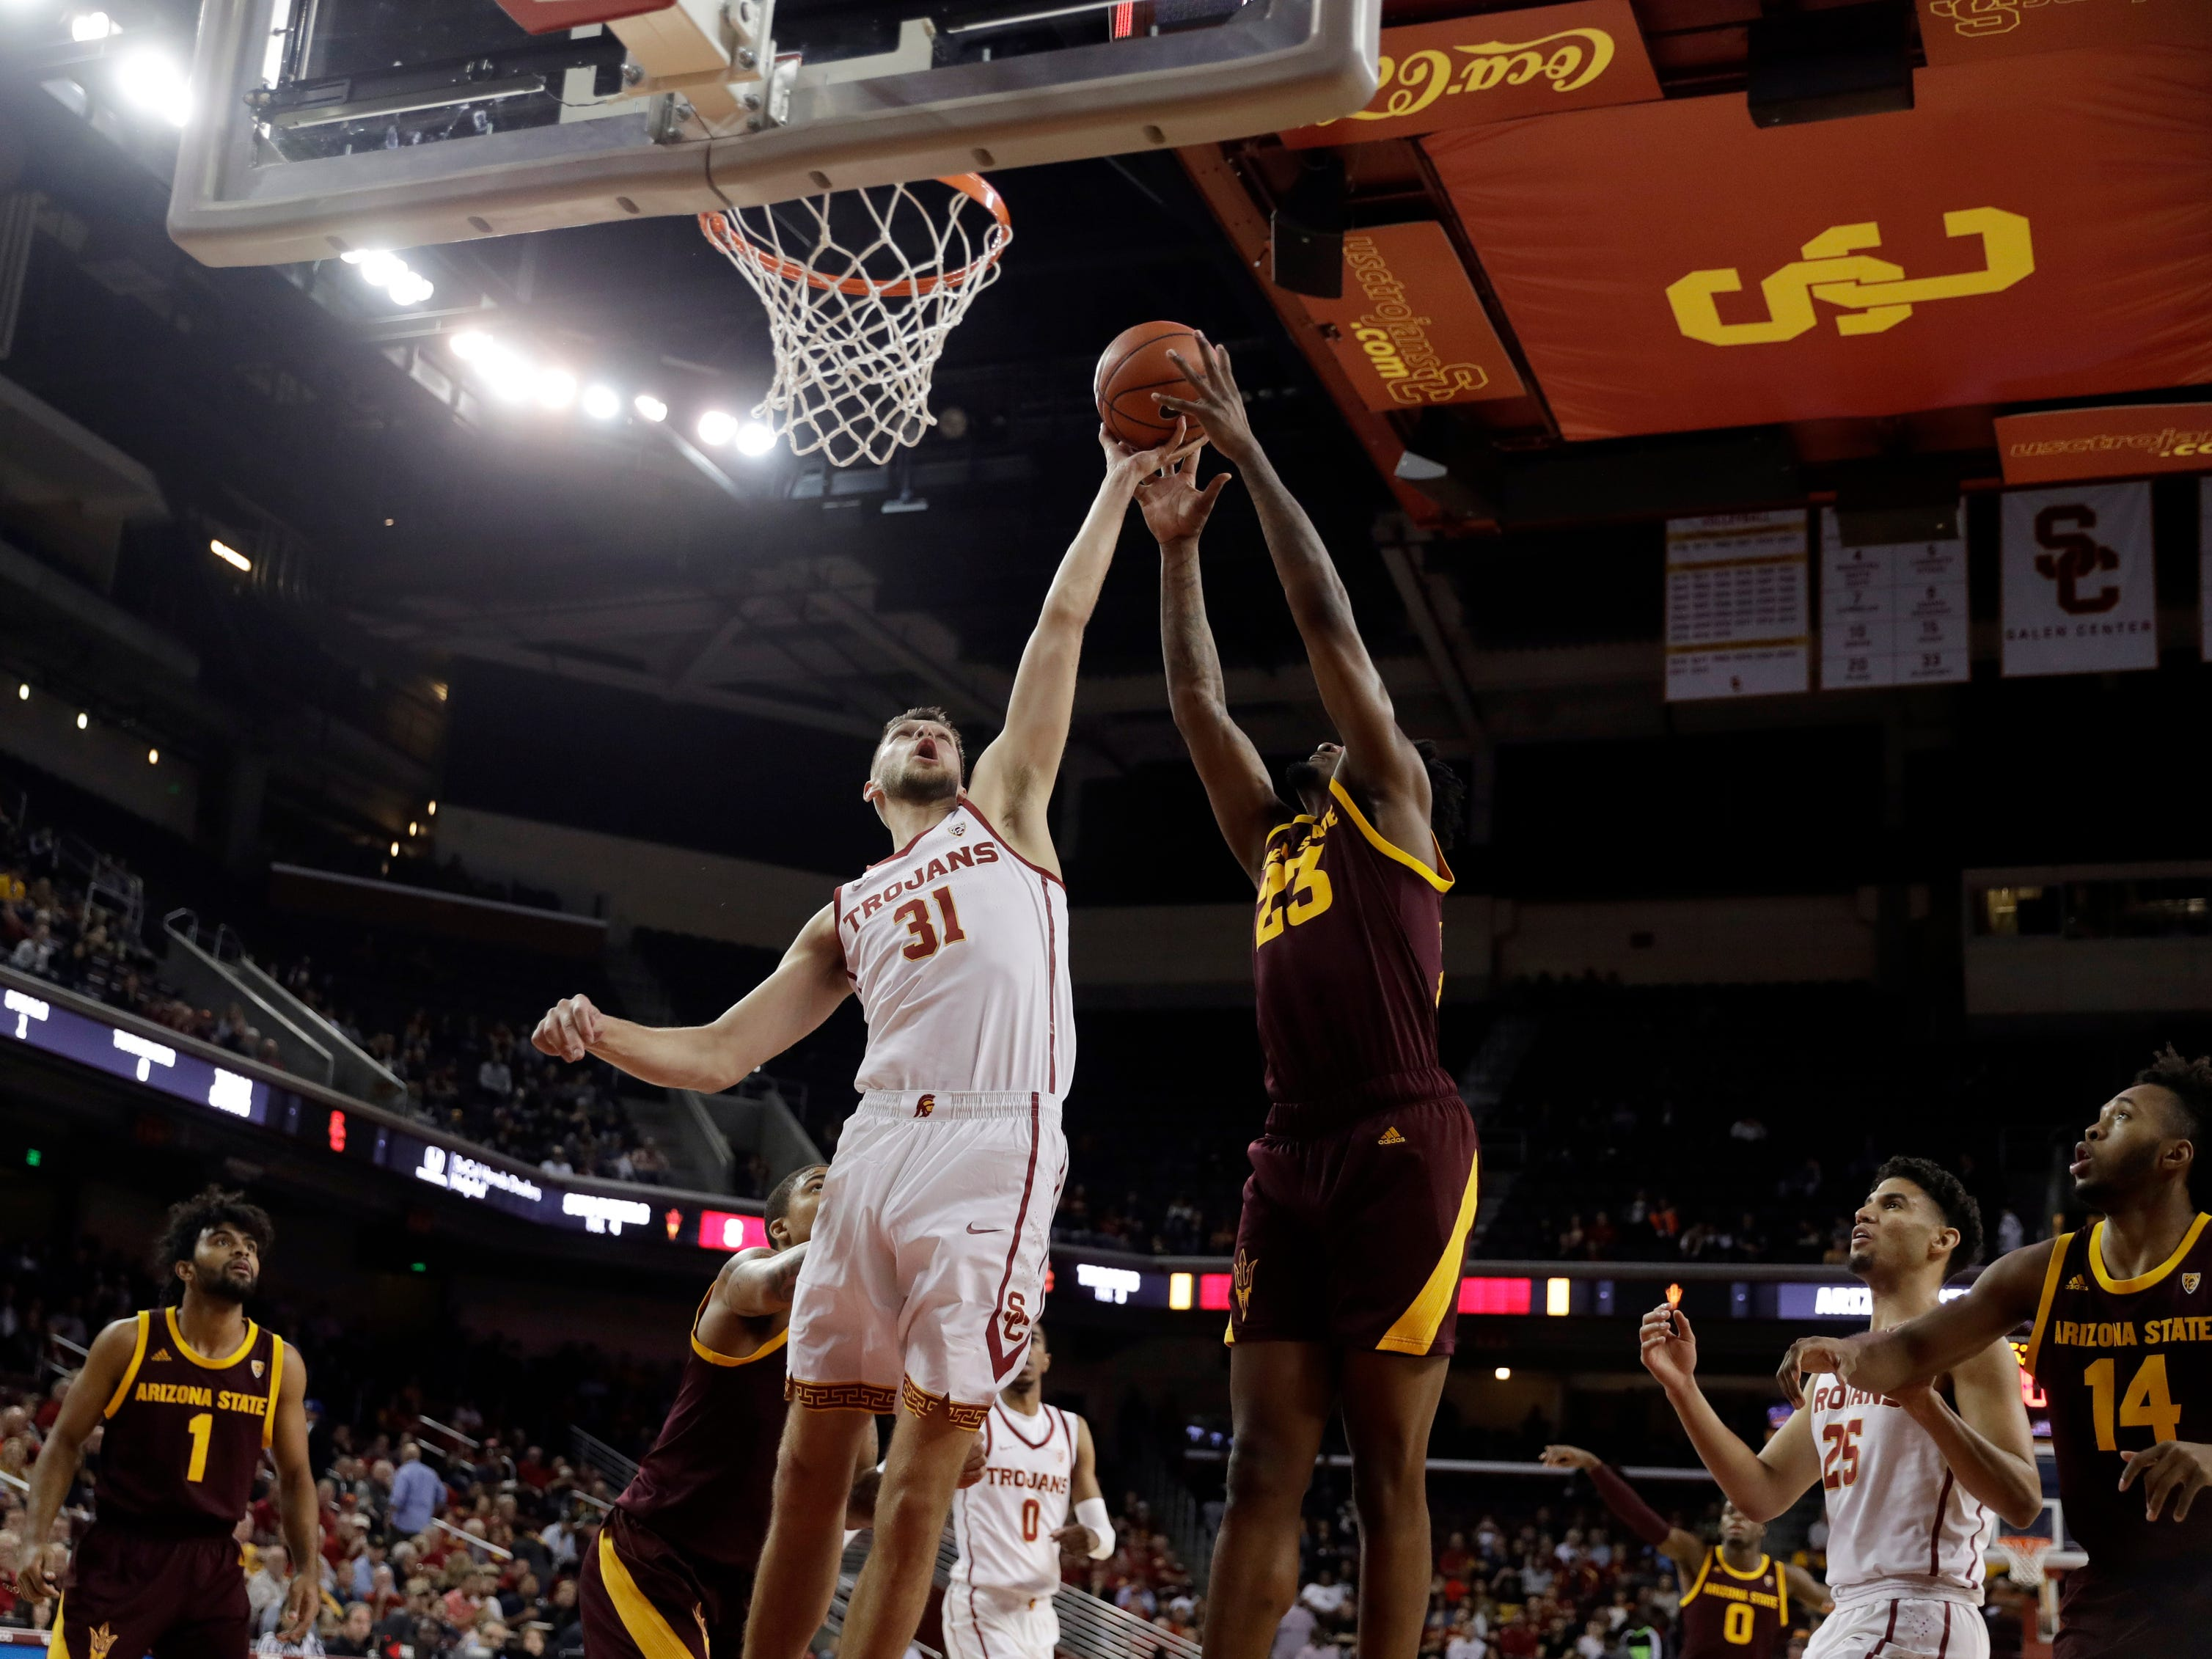 Southern California forward Nick Rakocevic (31) works for a rebound against Arizona State forward Romello White (23) during the first half of an NCAA college basketball game Saturday, Jan. 26, 2019, in Los Angeles.